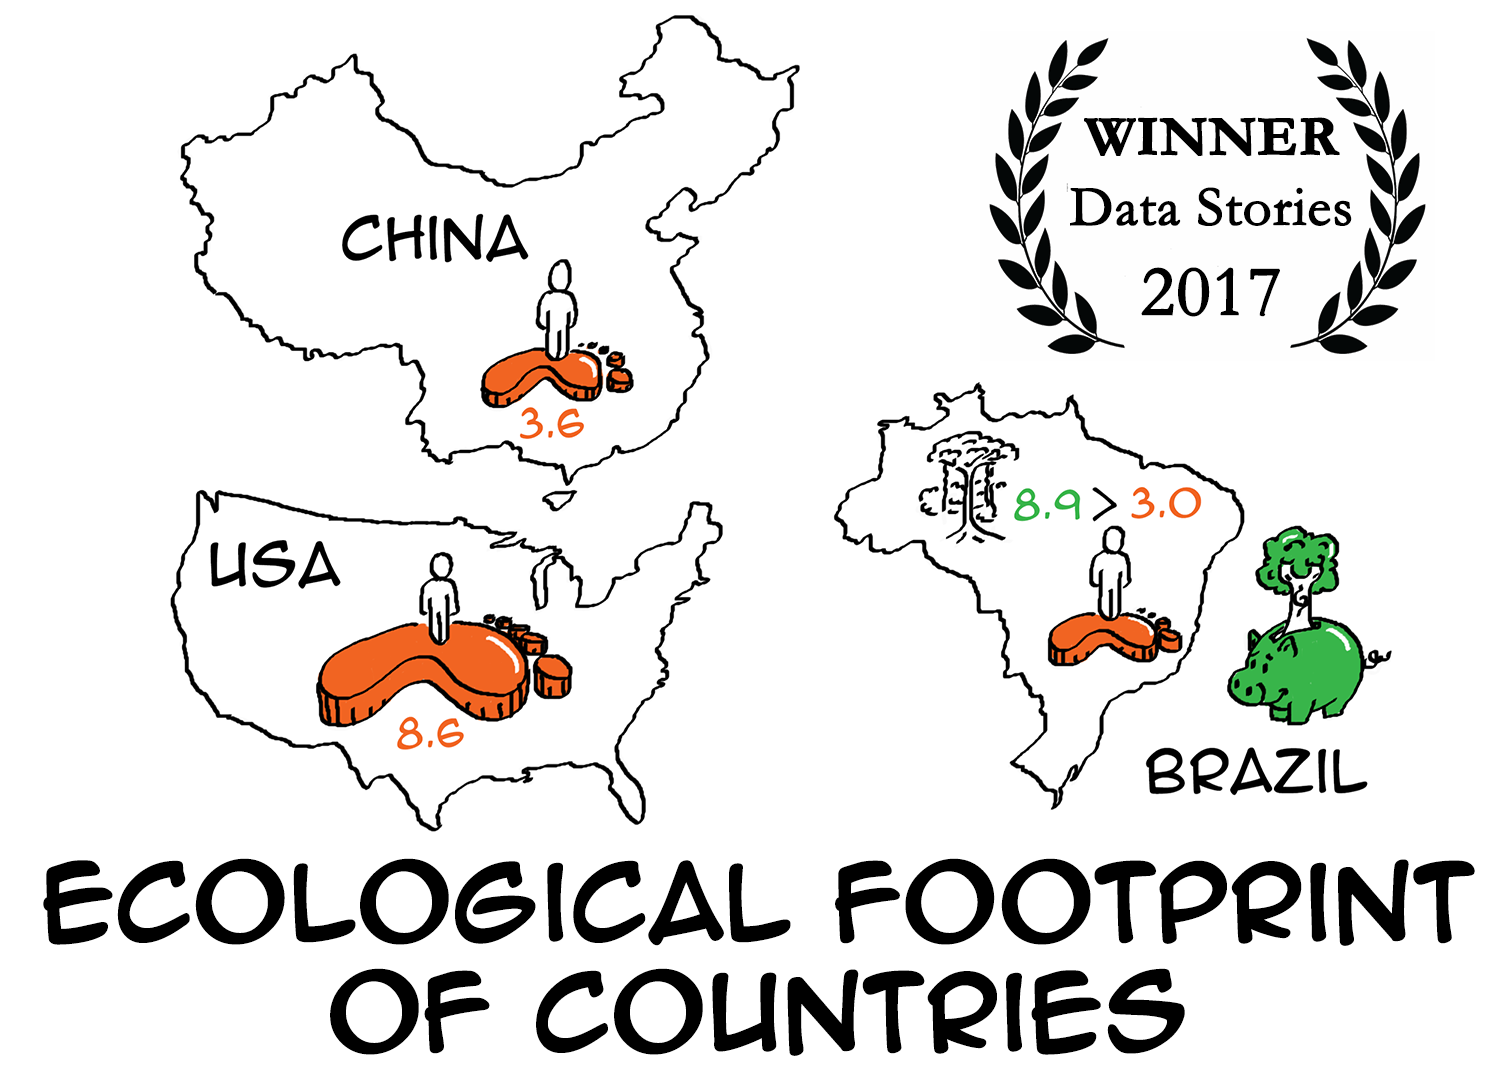 Ecological Footprint of Countries (2017 Data Stories Winner)